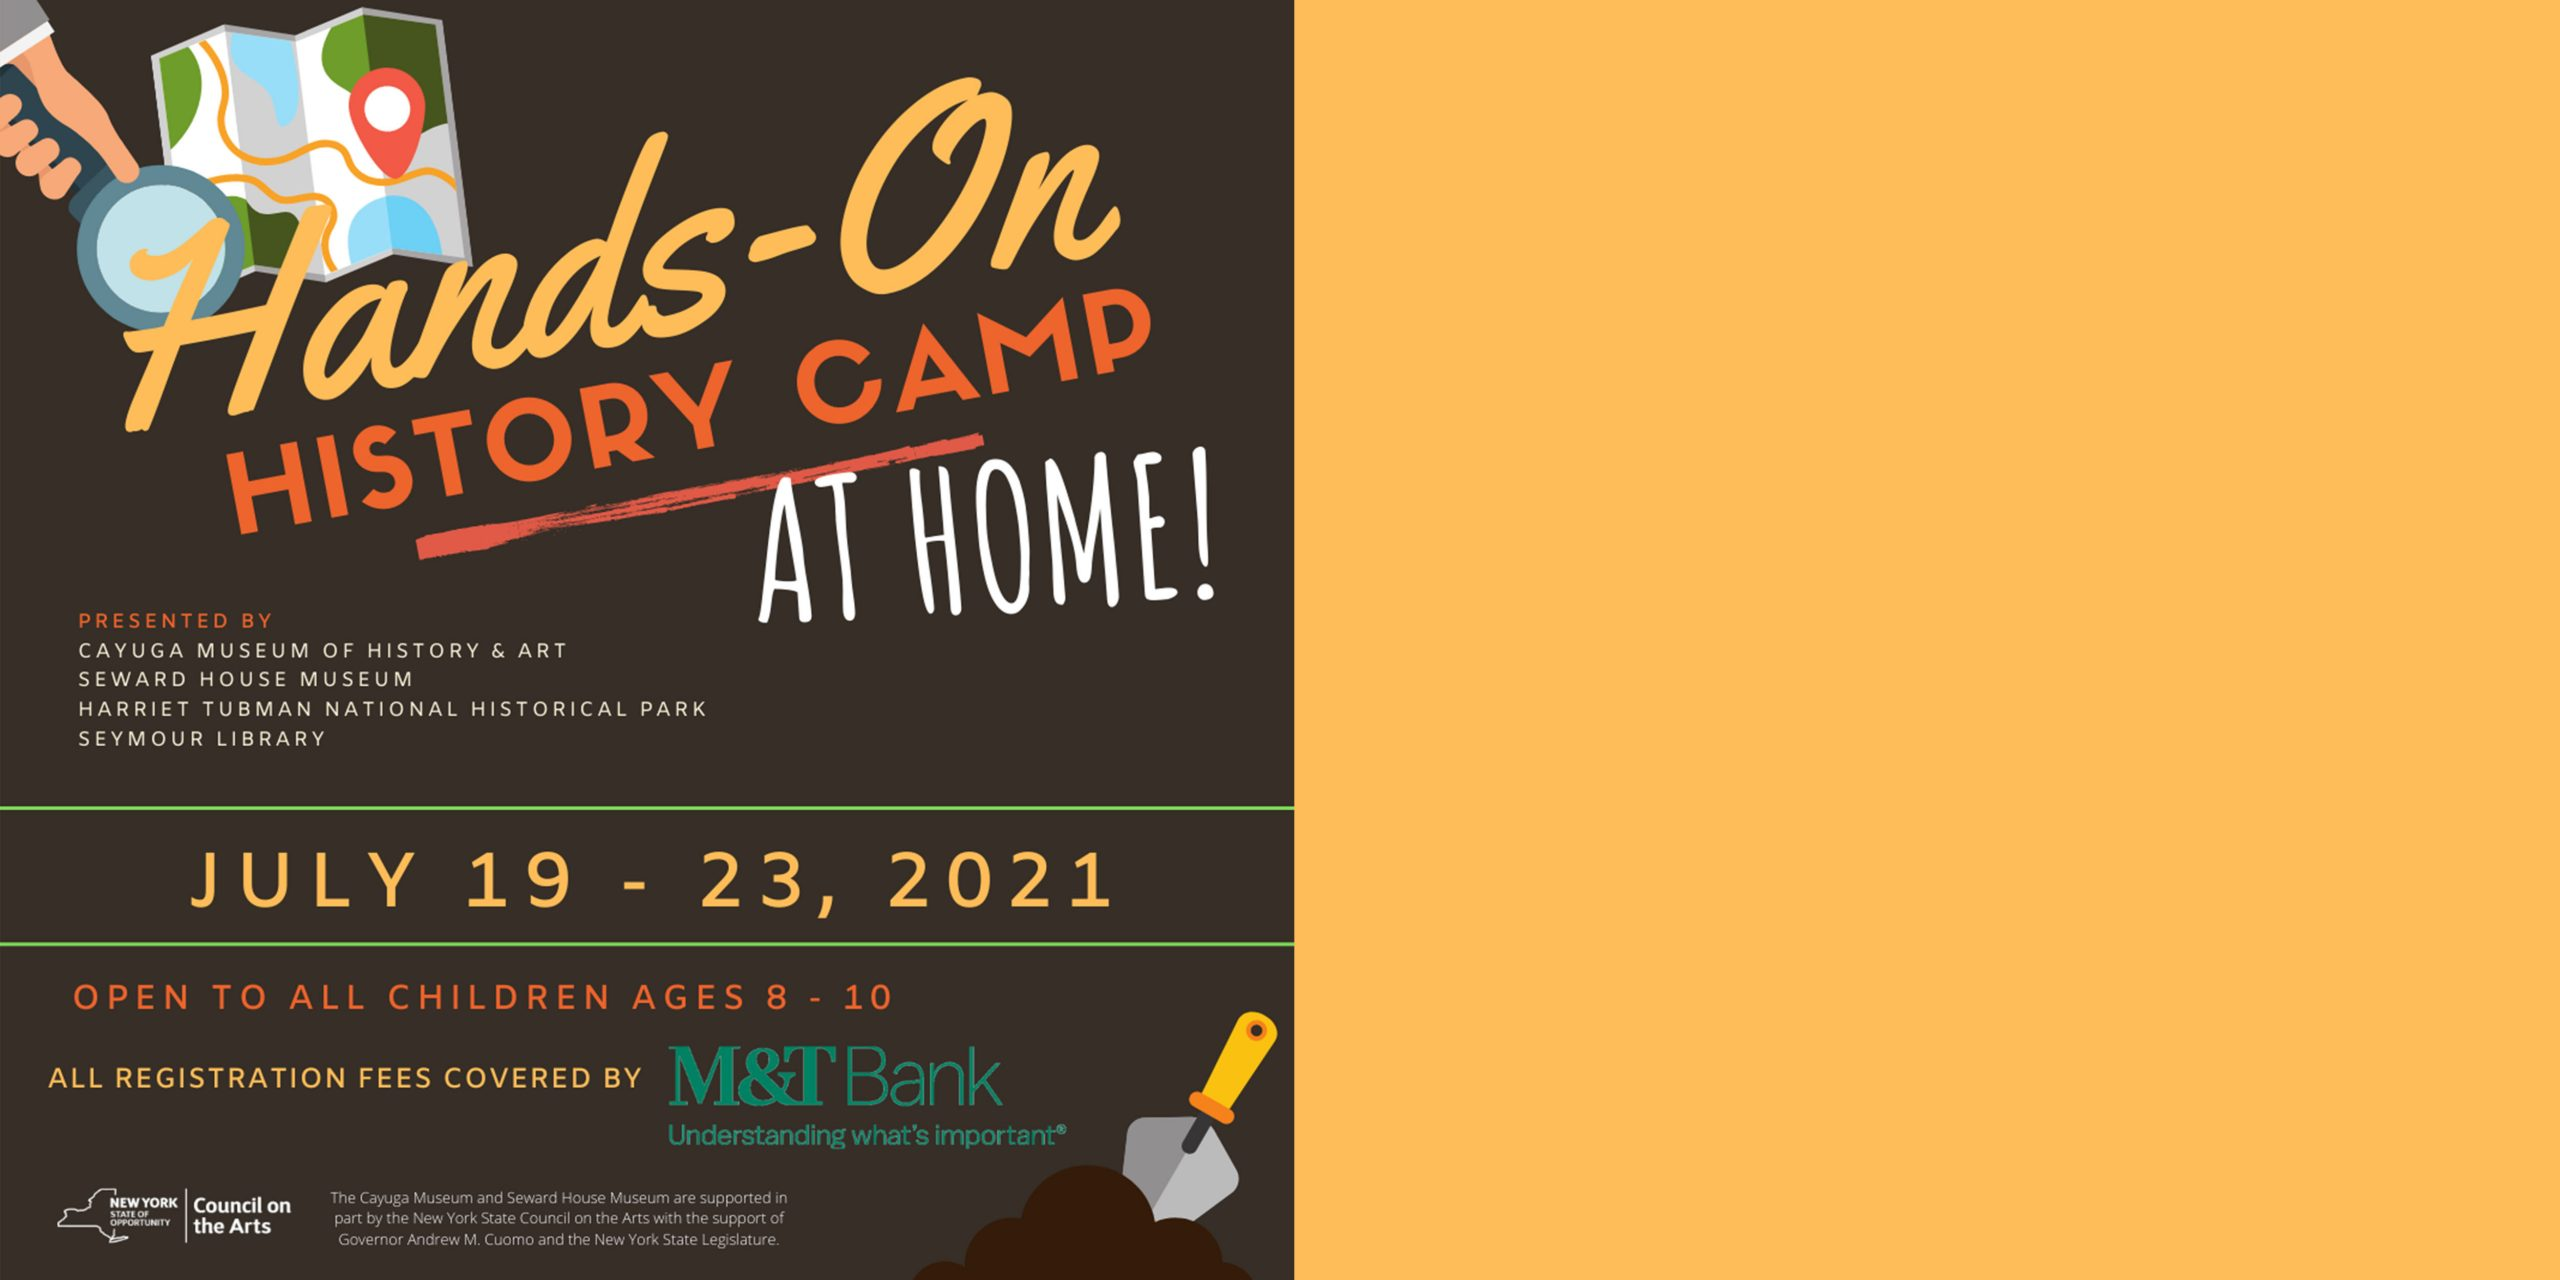 Hands-On History Camp